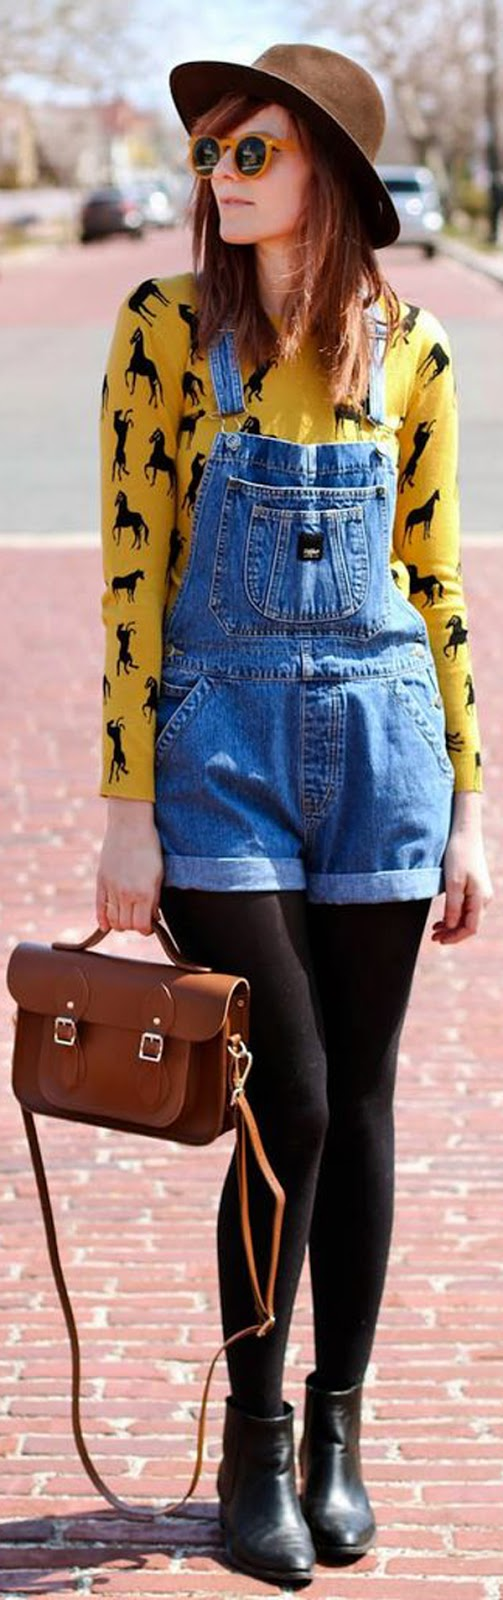 casual overalls outfit